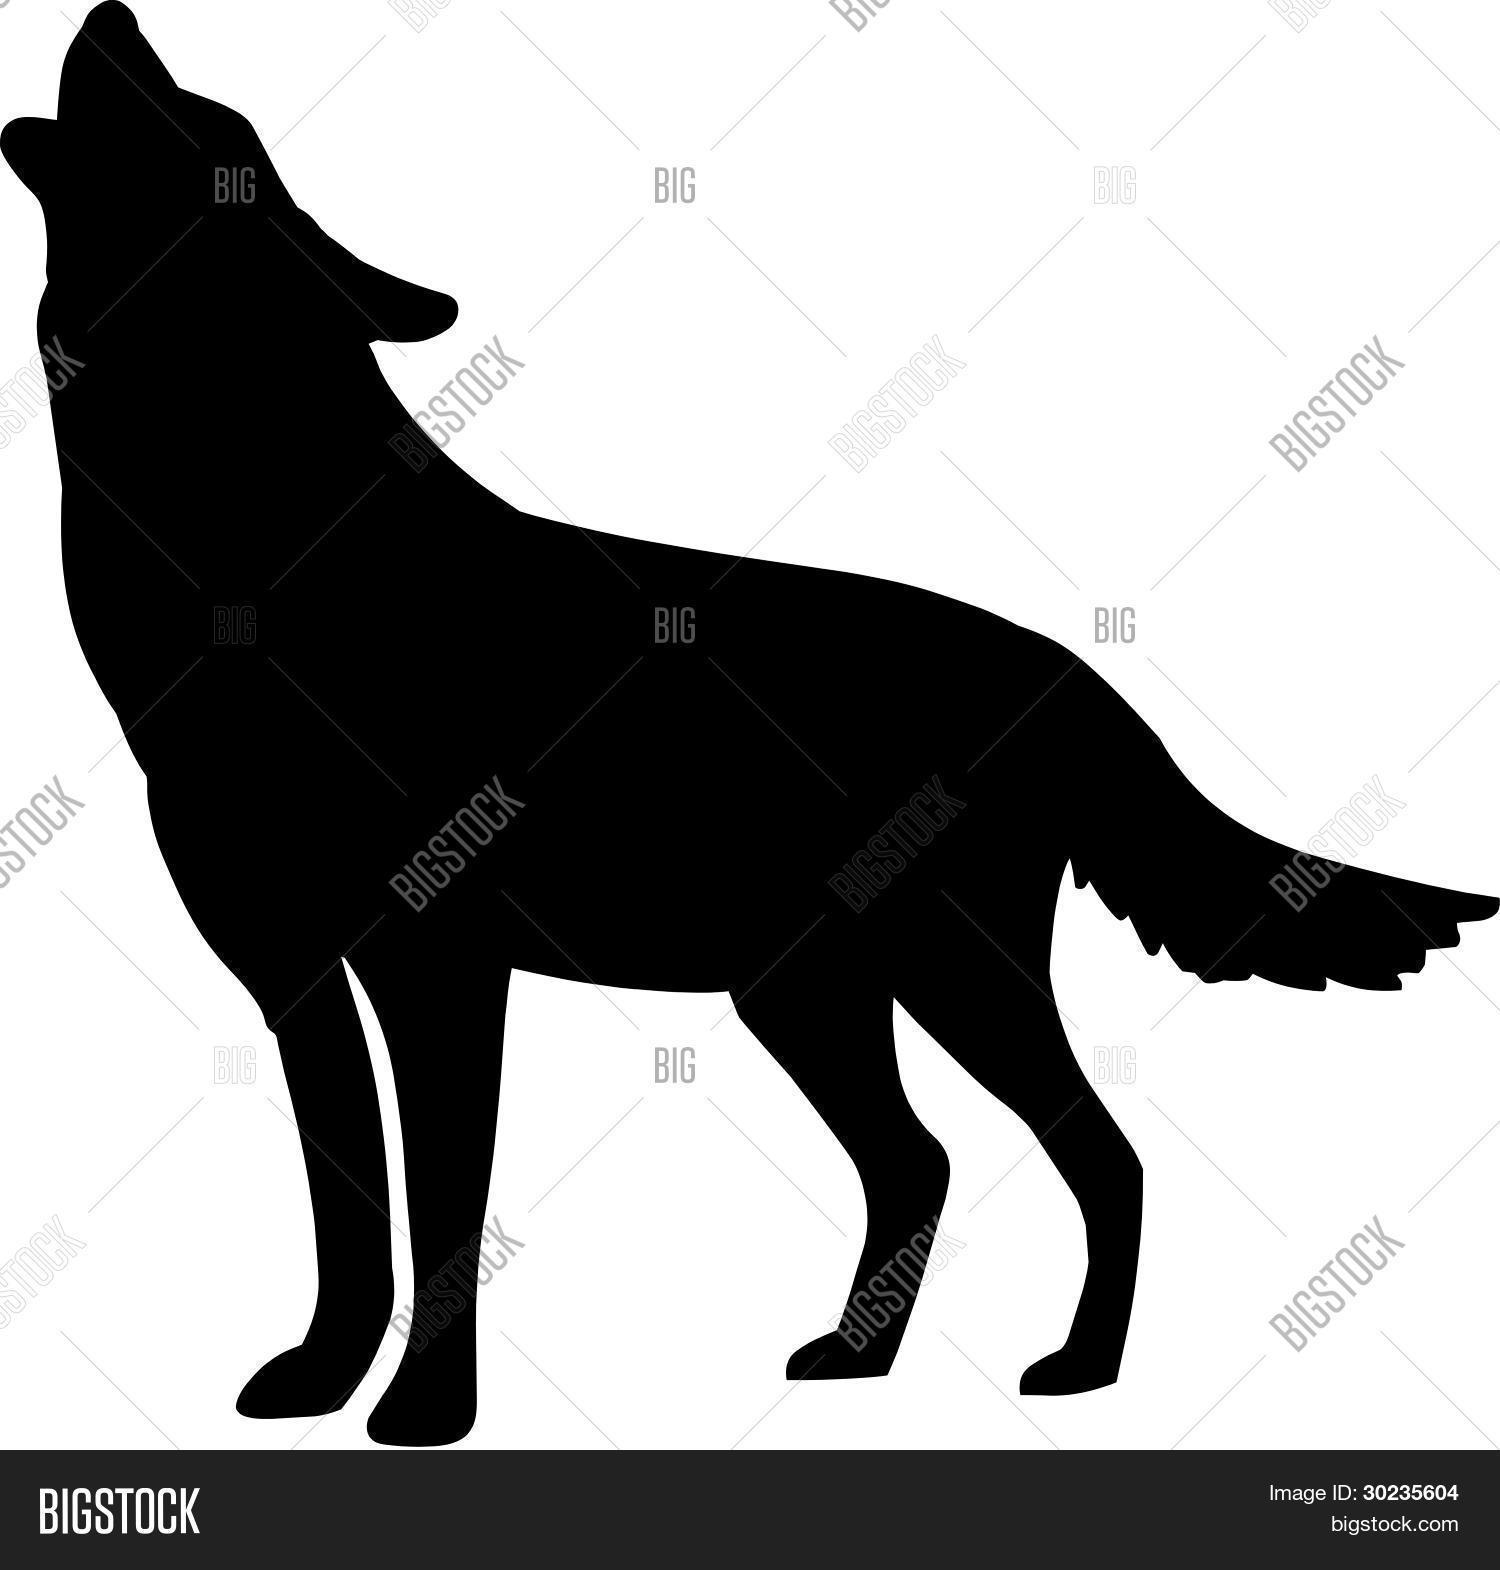 Howling Wolf Silhouette Stock Photos, Images, & Pictures ...